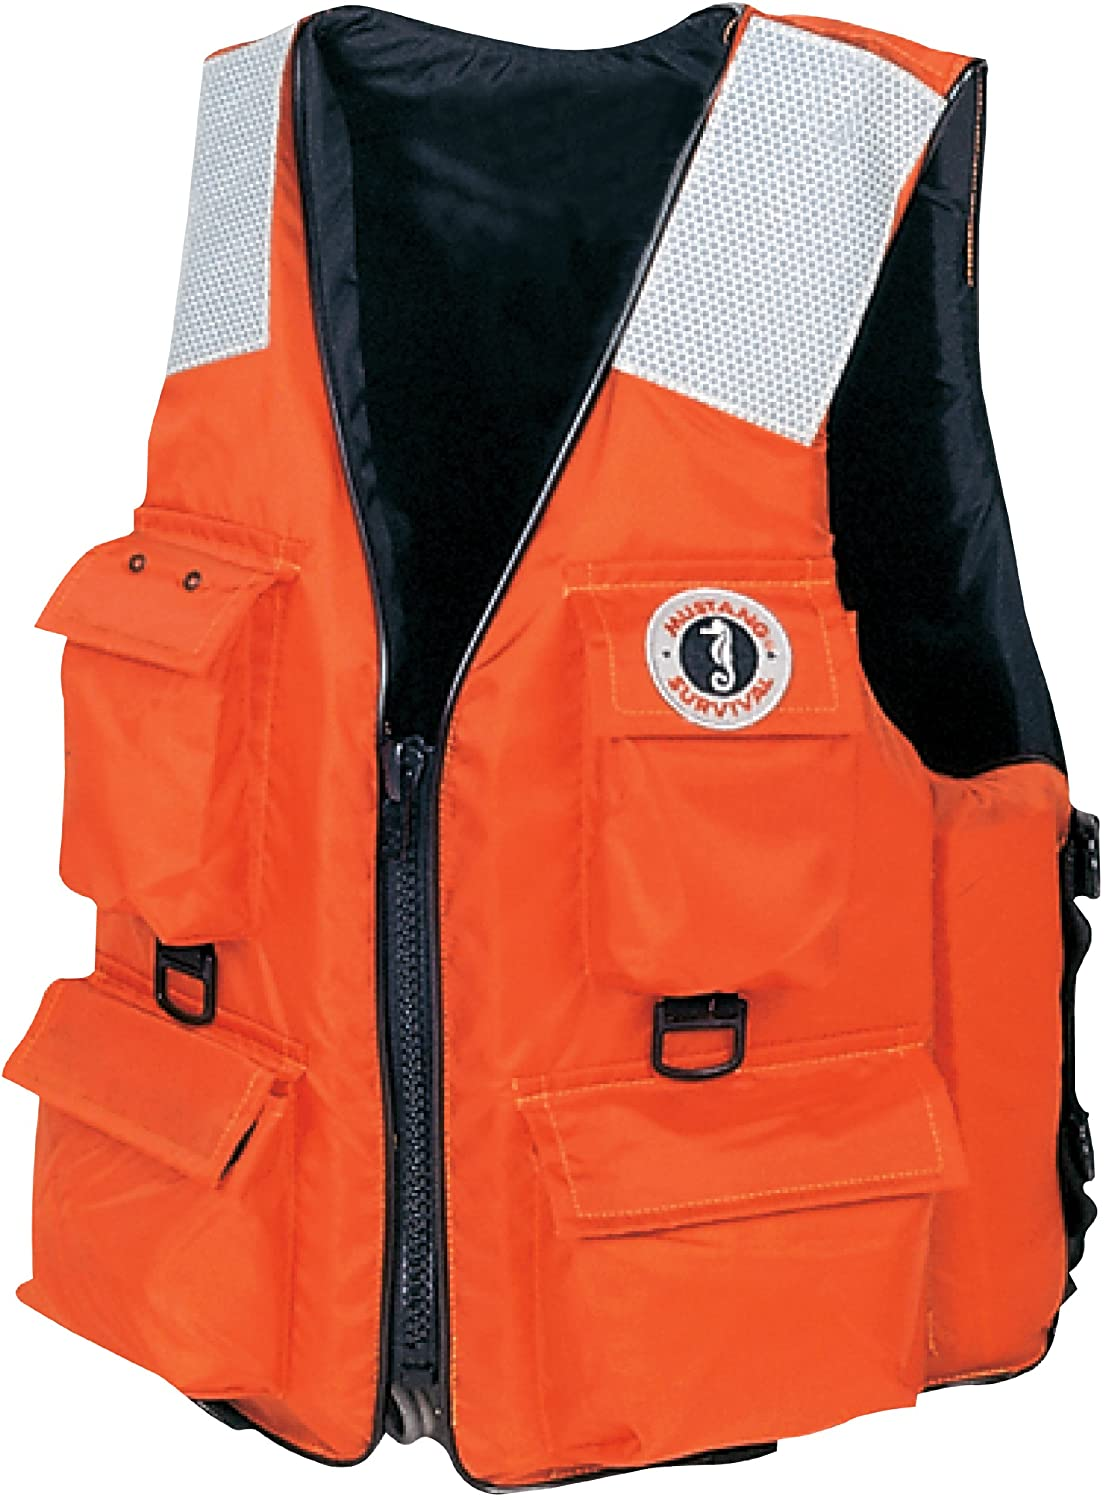 Image result for image of orange life jacket